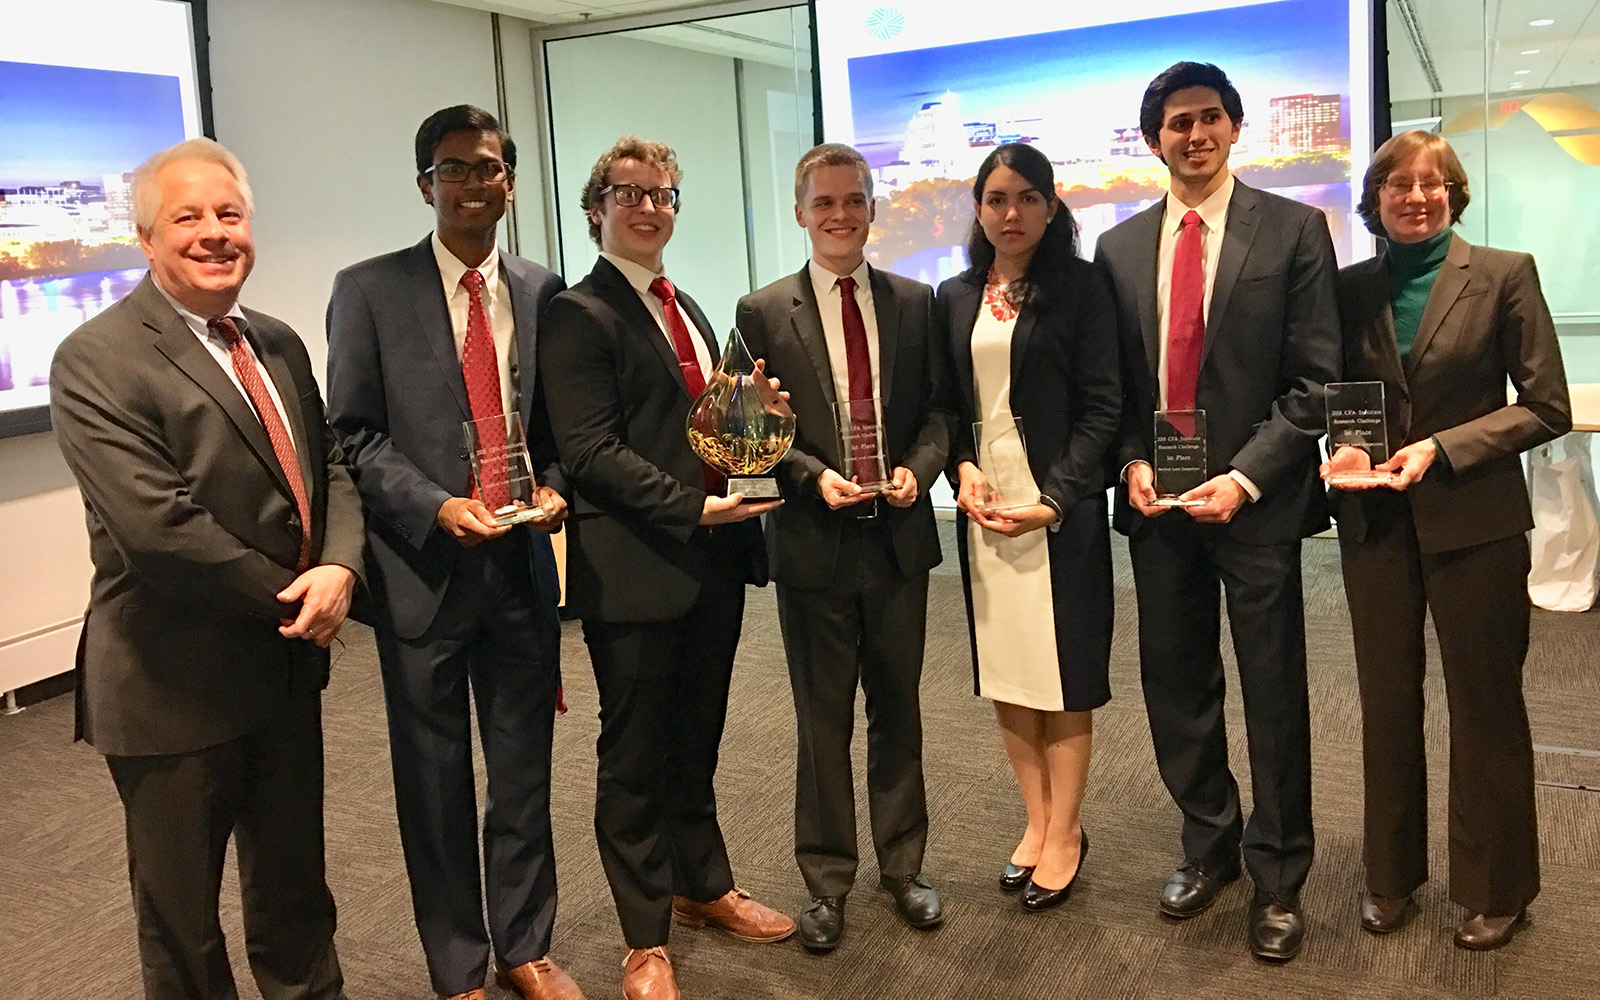 Pictured, from left: Chris Wilkos, CFA (advisor), Vivek Tedla '18, Jack Leyland '18, Bartosz Walas '18, Ana Walas '18, Anthony Mottolese '18 and Leslie White, CFA (industry advisor). (Ana Walas/UConn School of Business)